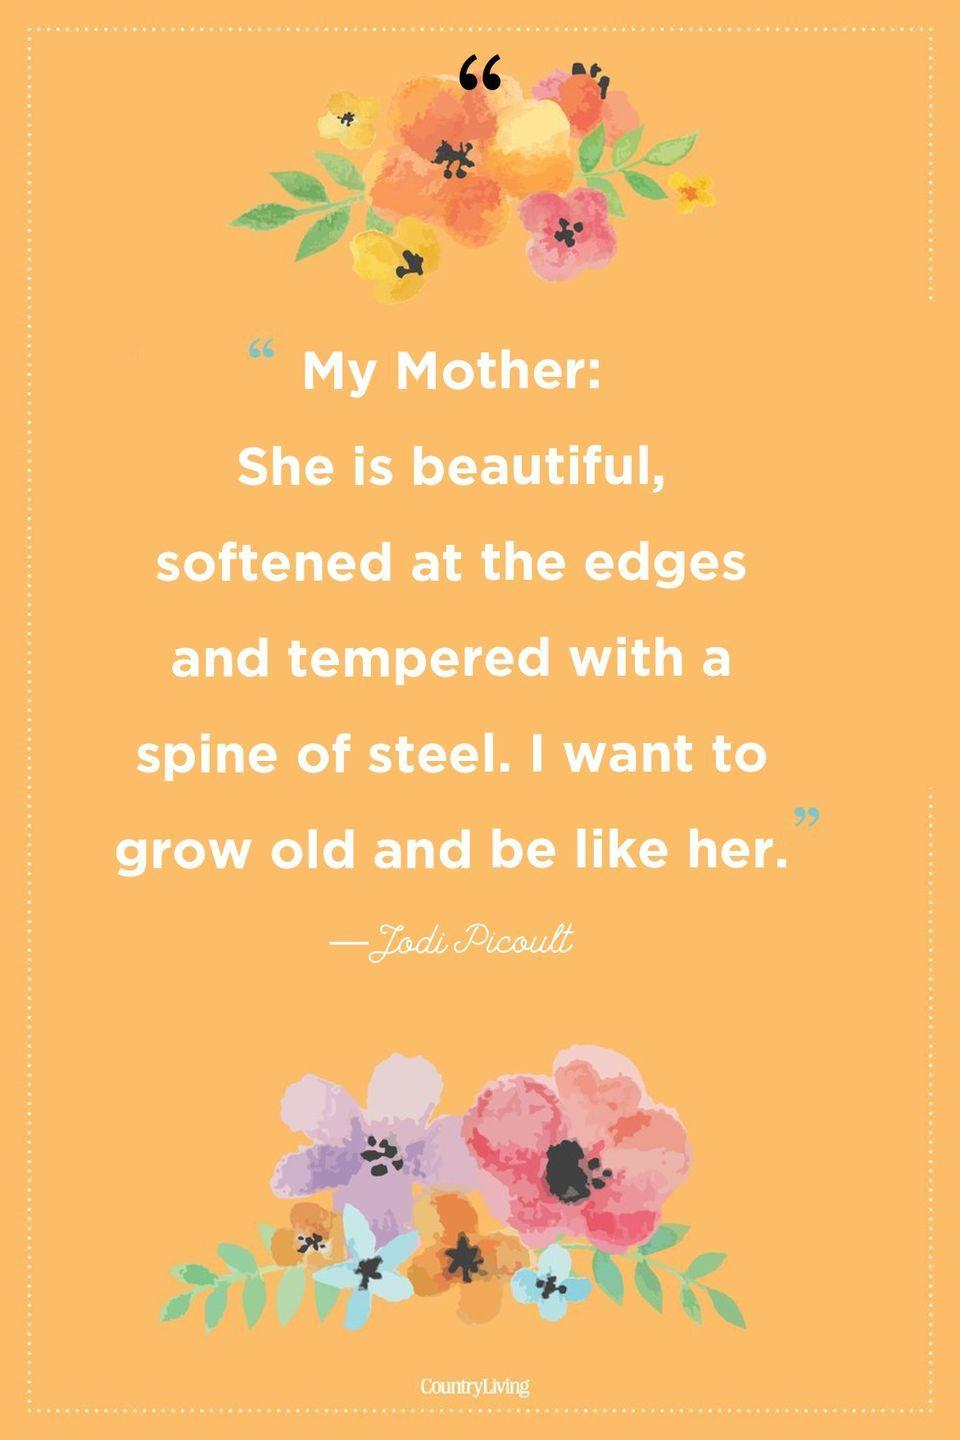 "<p>""My Mother: She is beautiful, softened at the edges and tempered with a spine of steel. I want to grow old and be like her.""</p>"